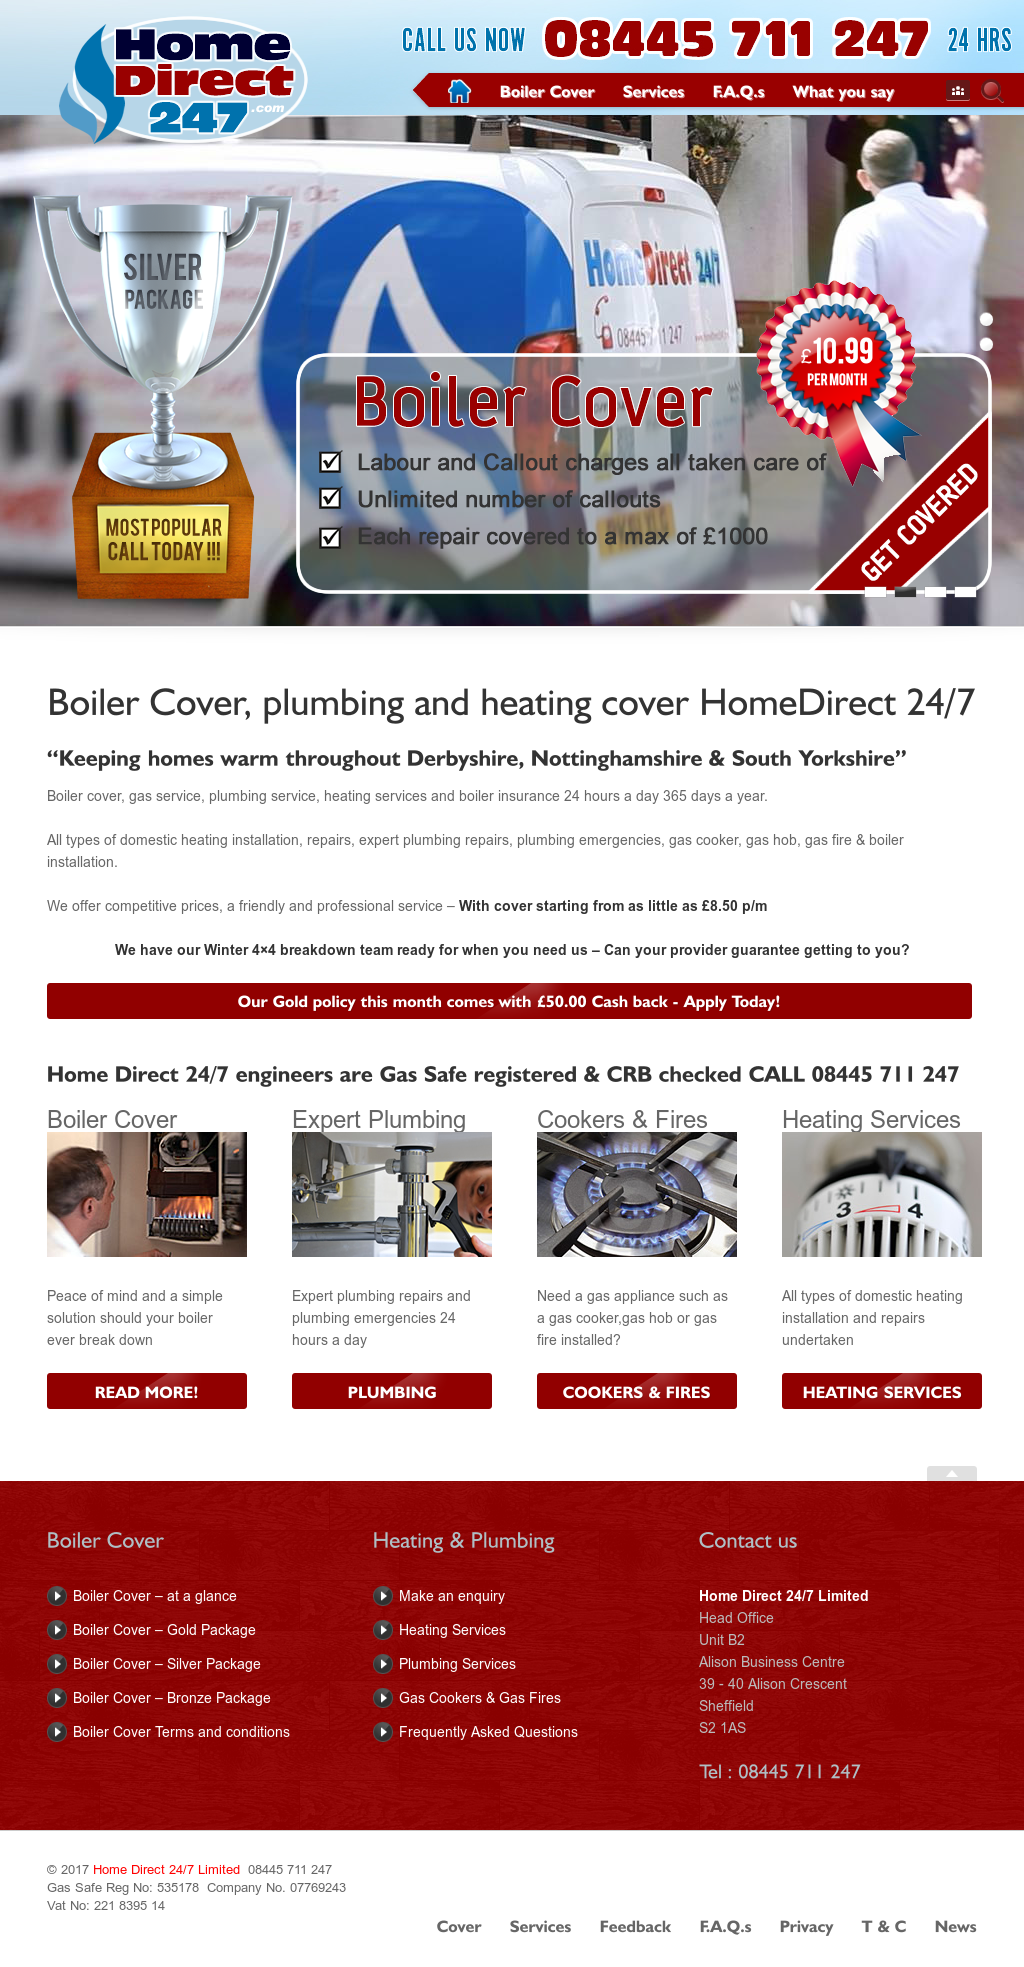 Home Direct 24/7 Competitors, Revenue and Employees - Owler Company